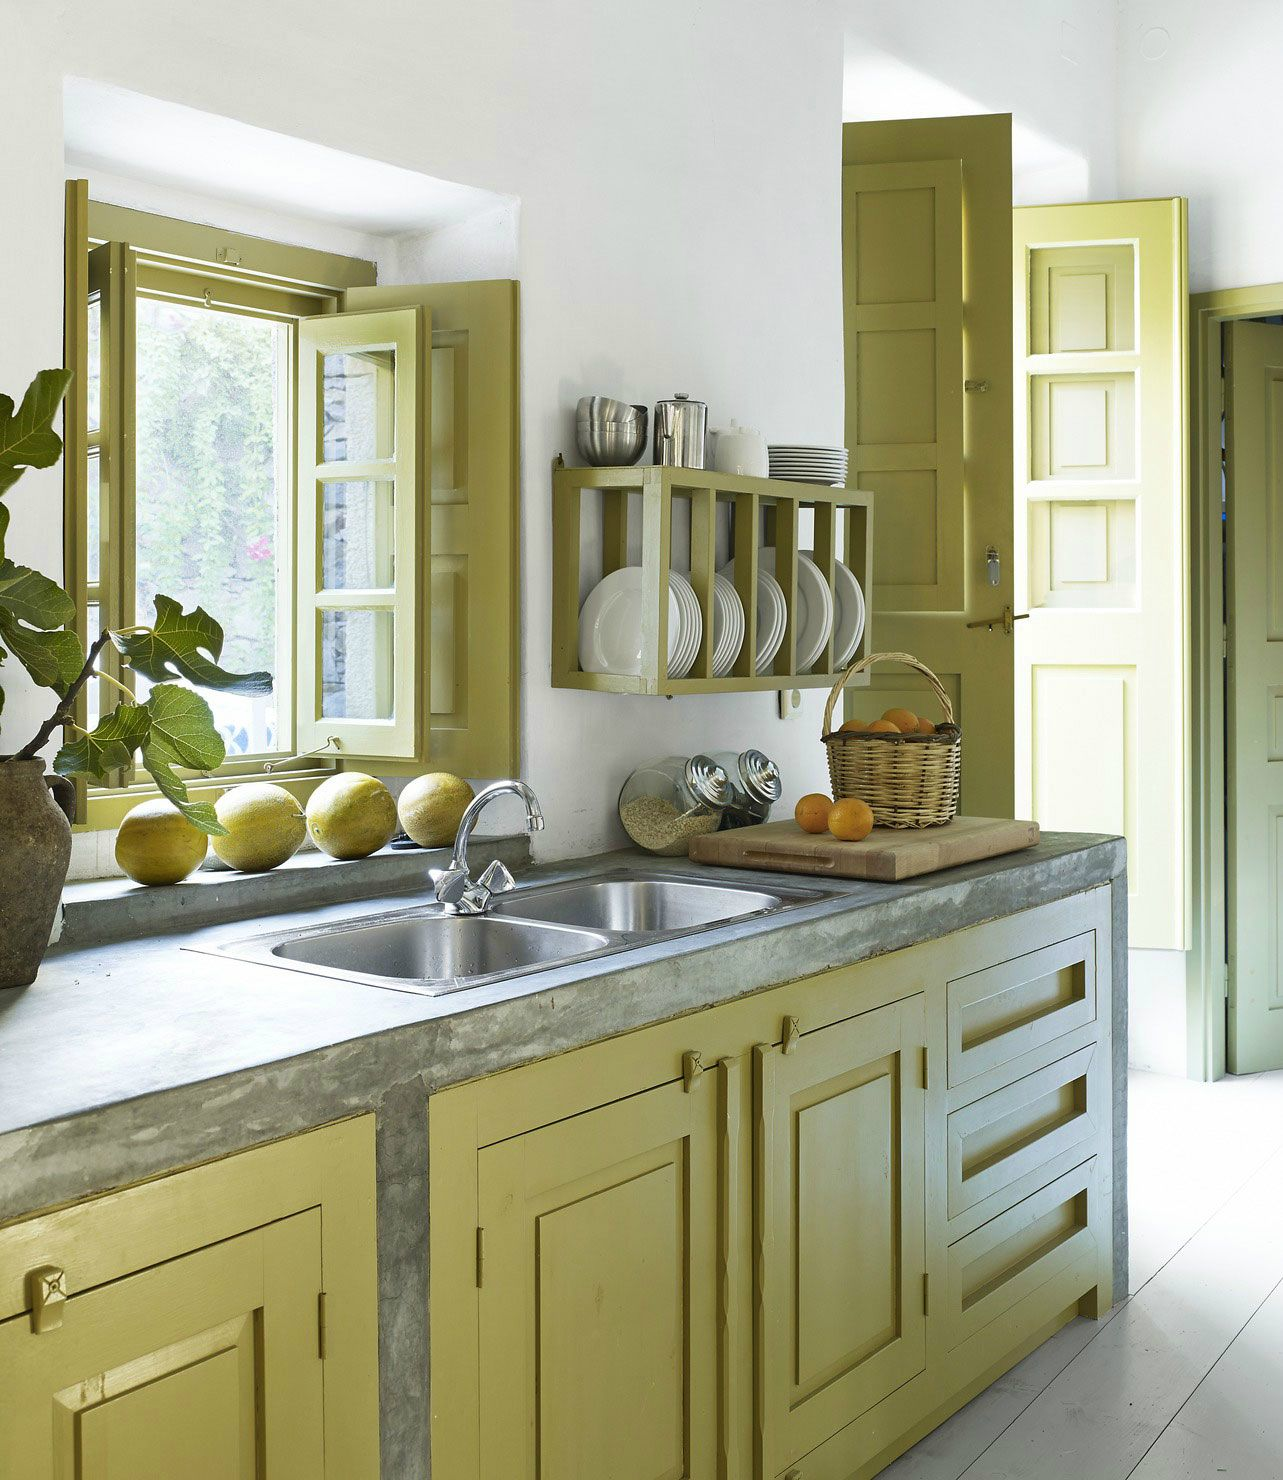 Elle decor predicts the color trends for 2017 yellow for Kitchen design and decoration